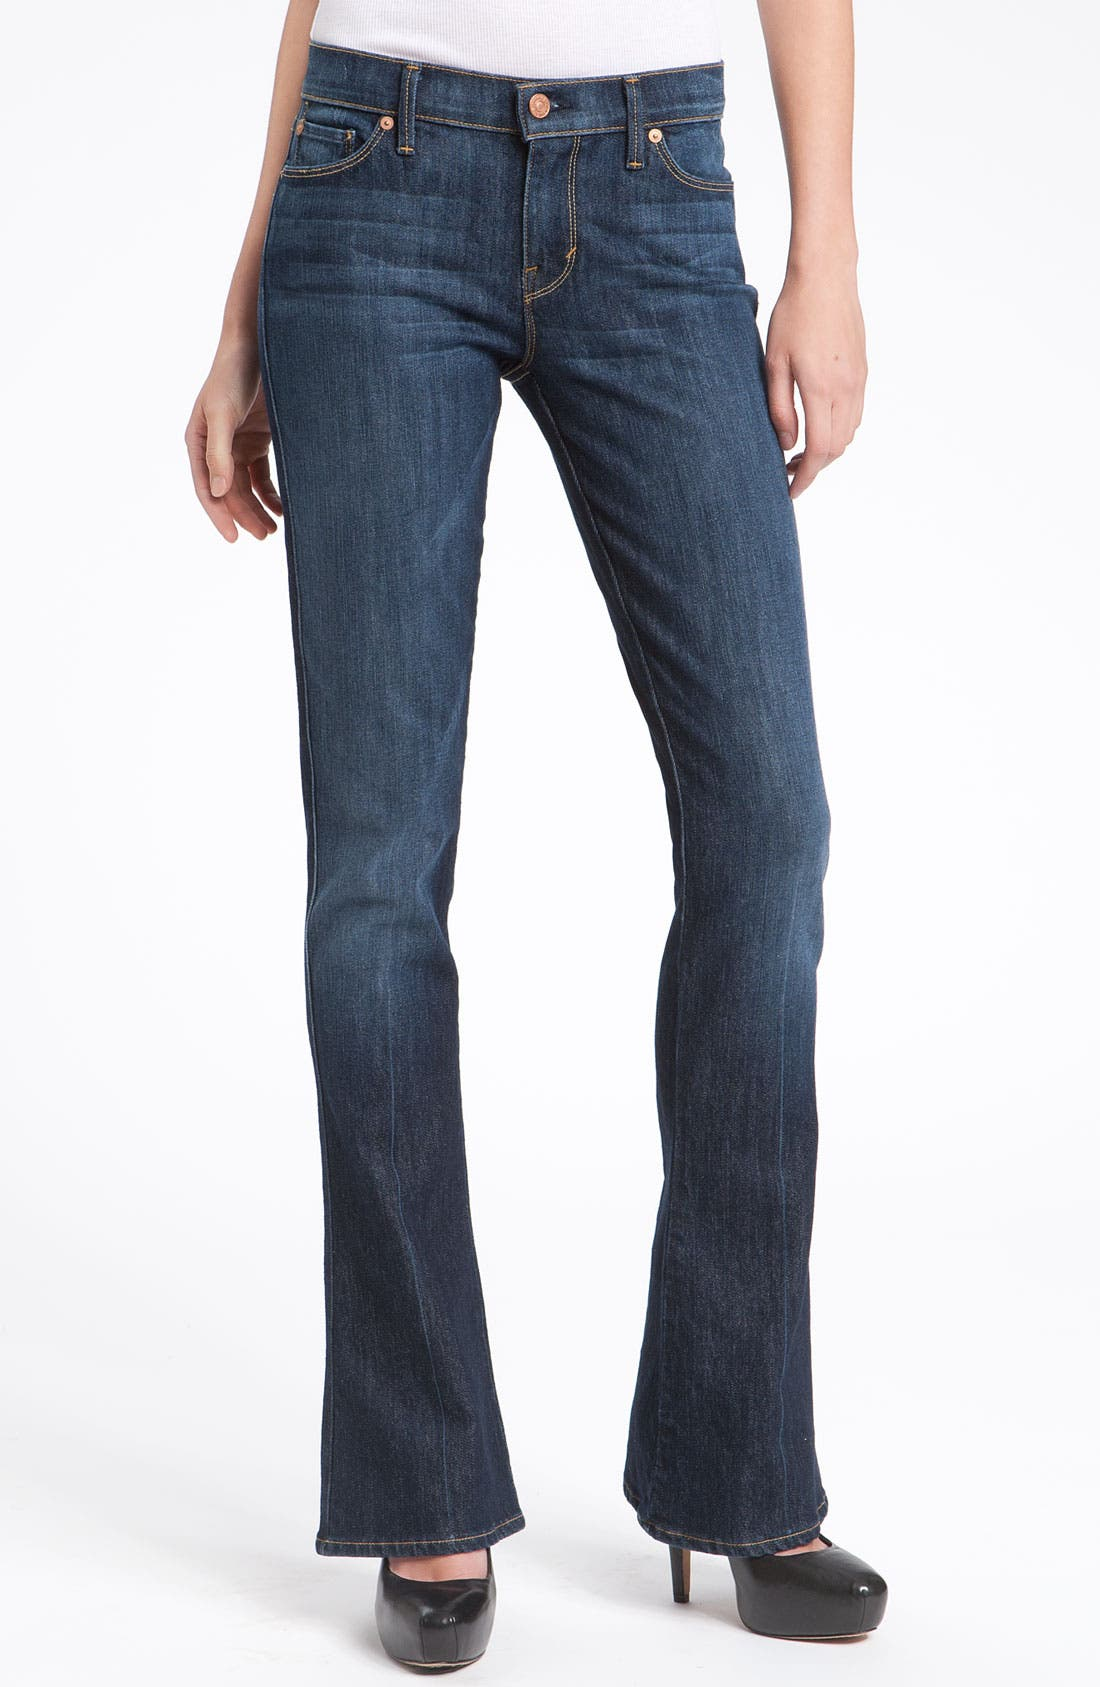 7 For All Mankind 'Kaylie' Bootcut Jeans,                             Main thumbnail 1, color,                             400